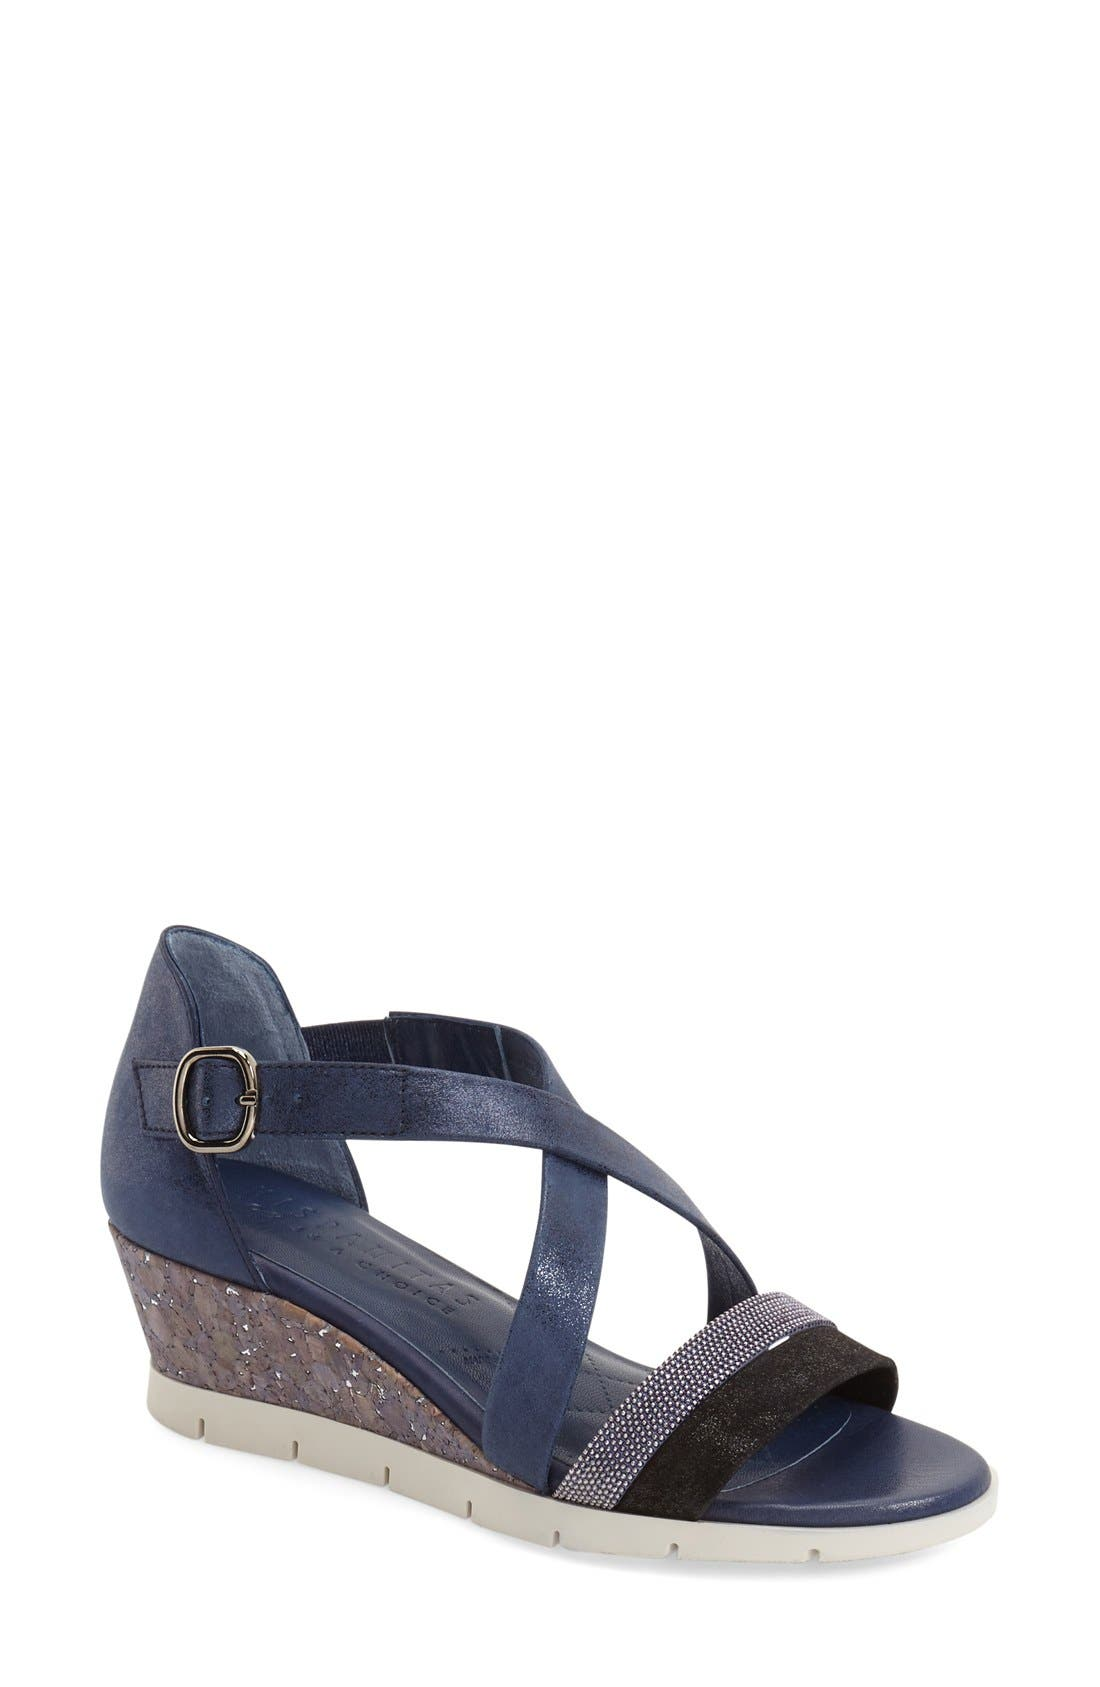 'Kennedi' Wedge Sandal,                         Main,                         color, Jeans Leather